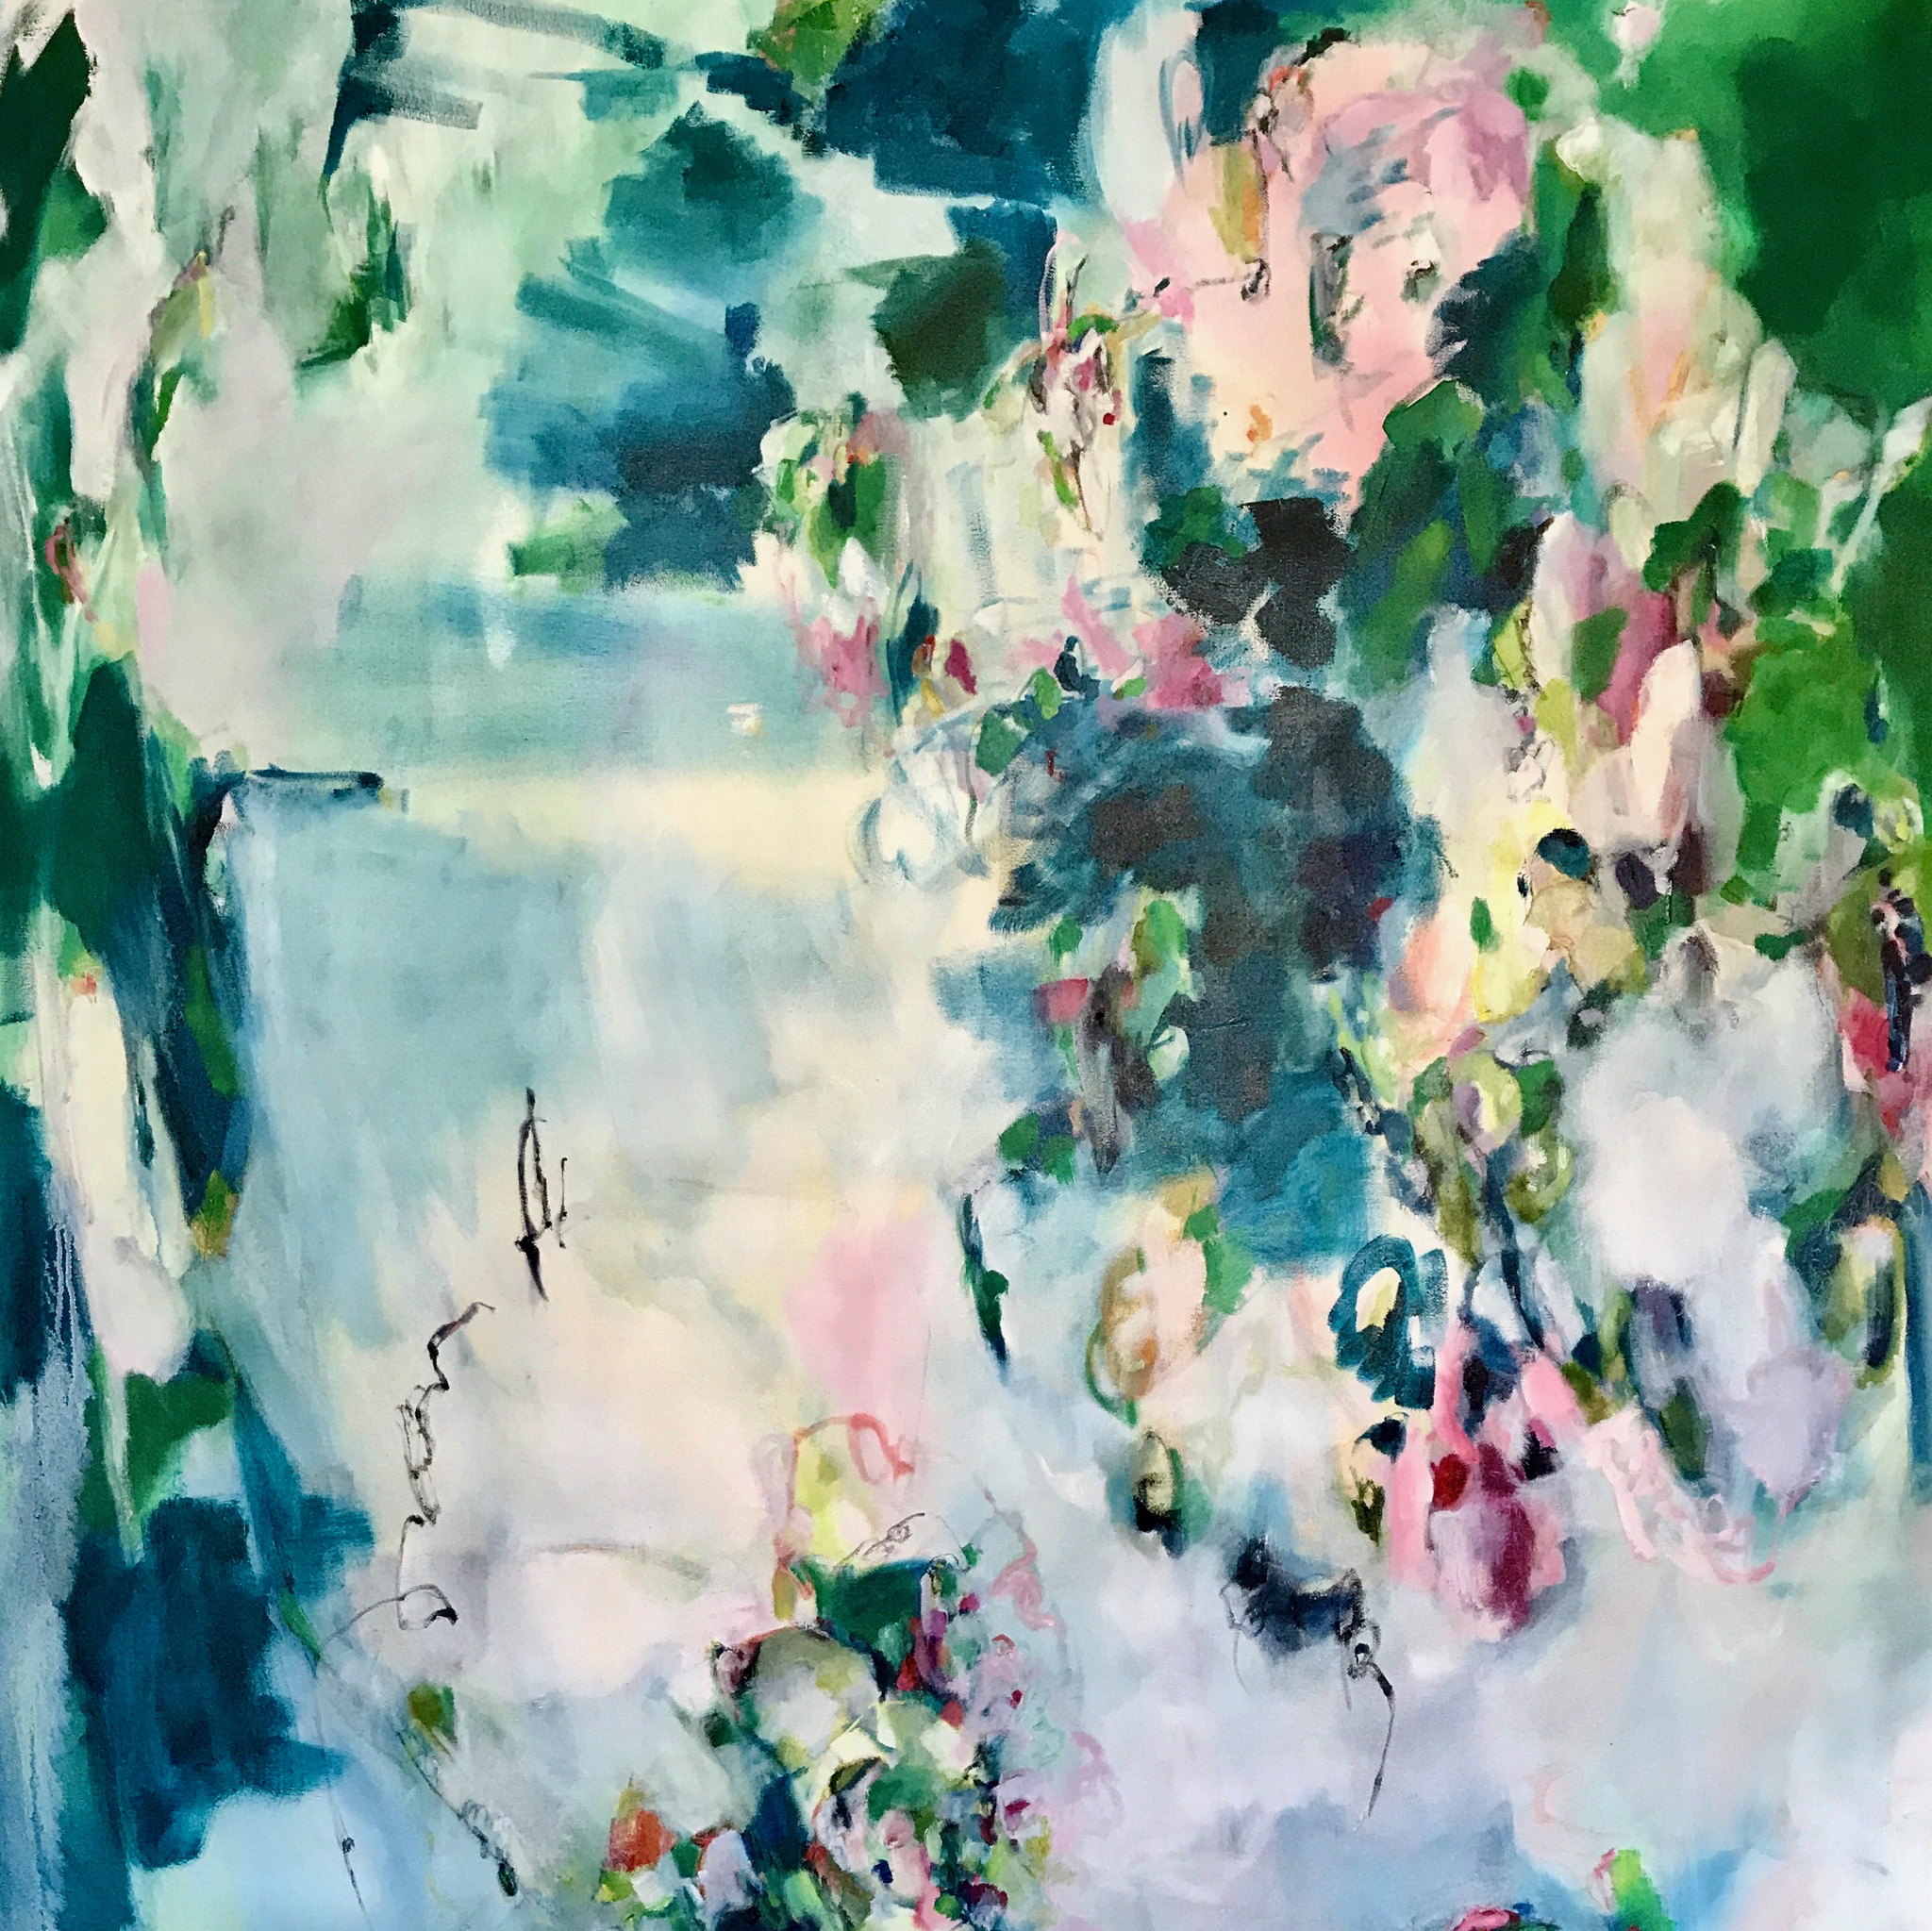 BY YOUR SIDE 48 in. x 48 in. oil on canvas  SOLD